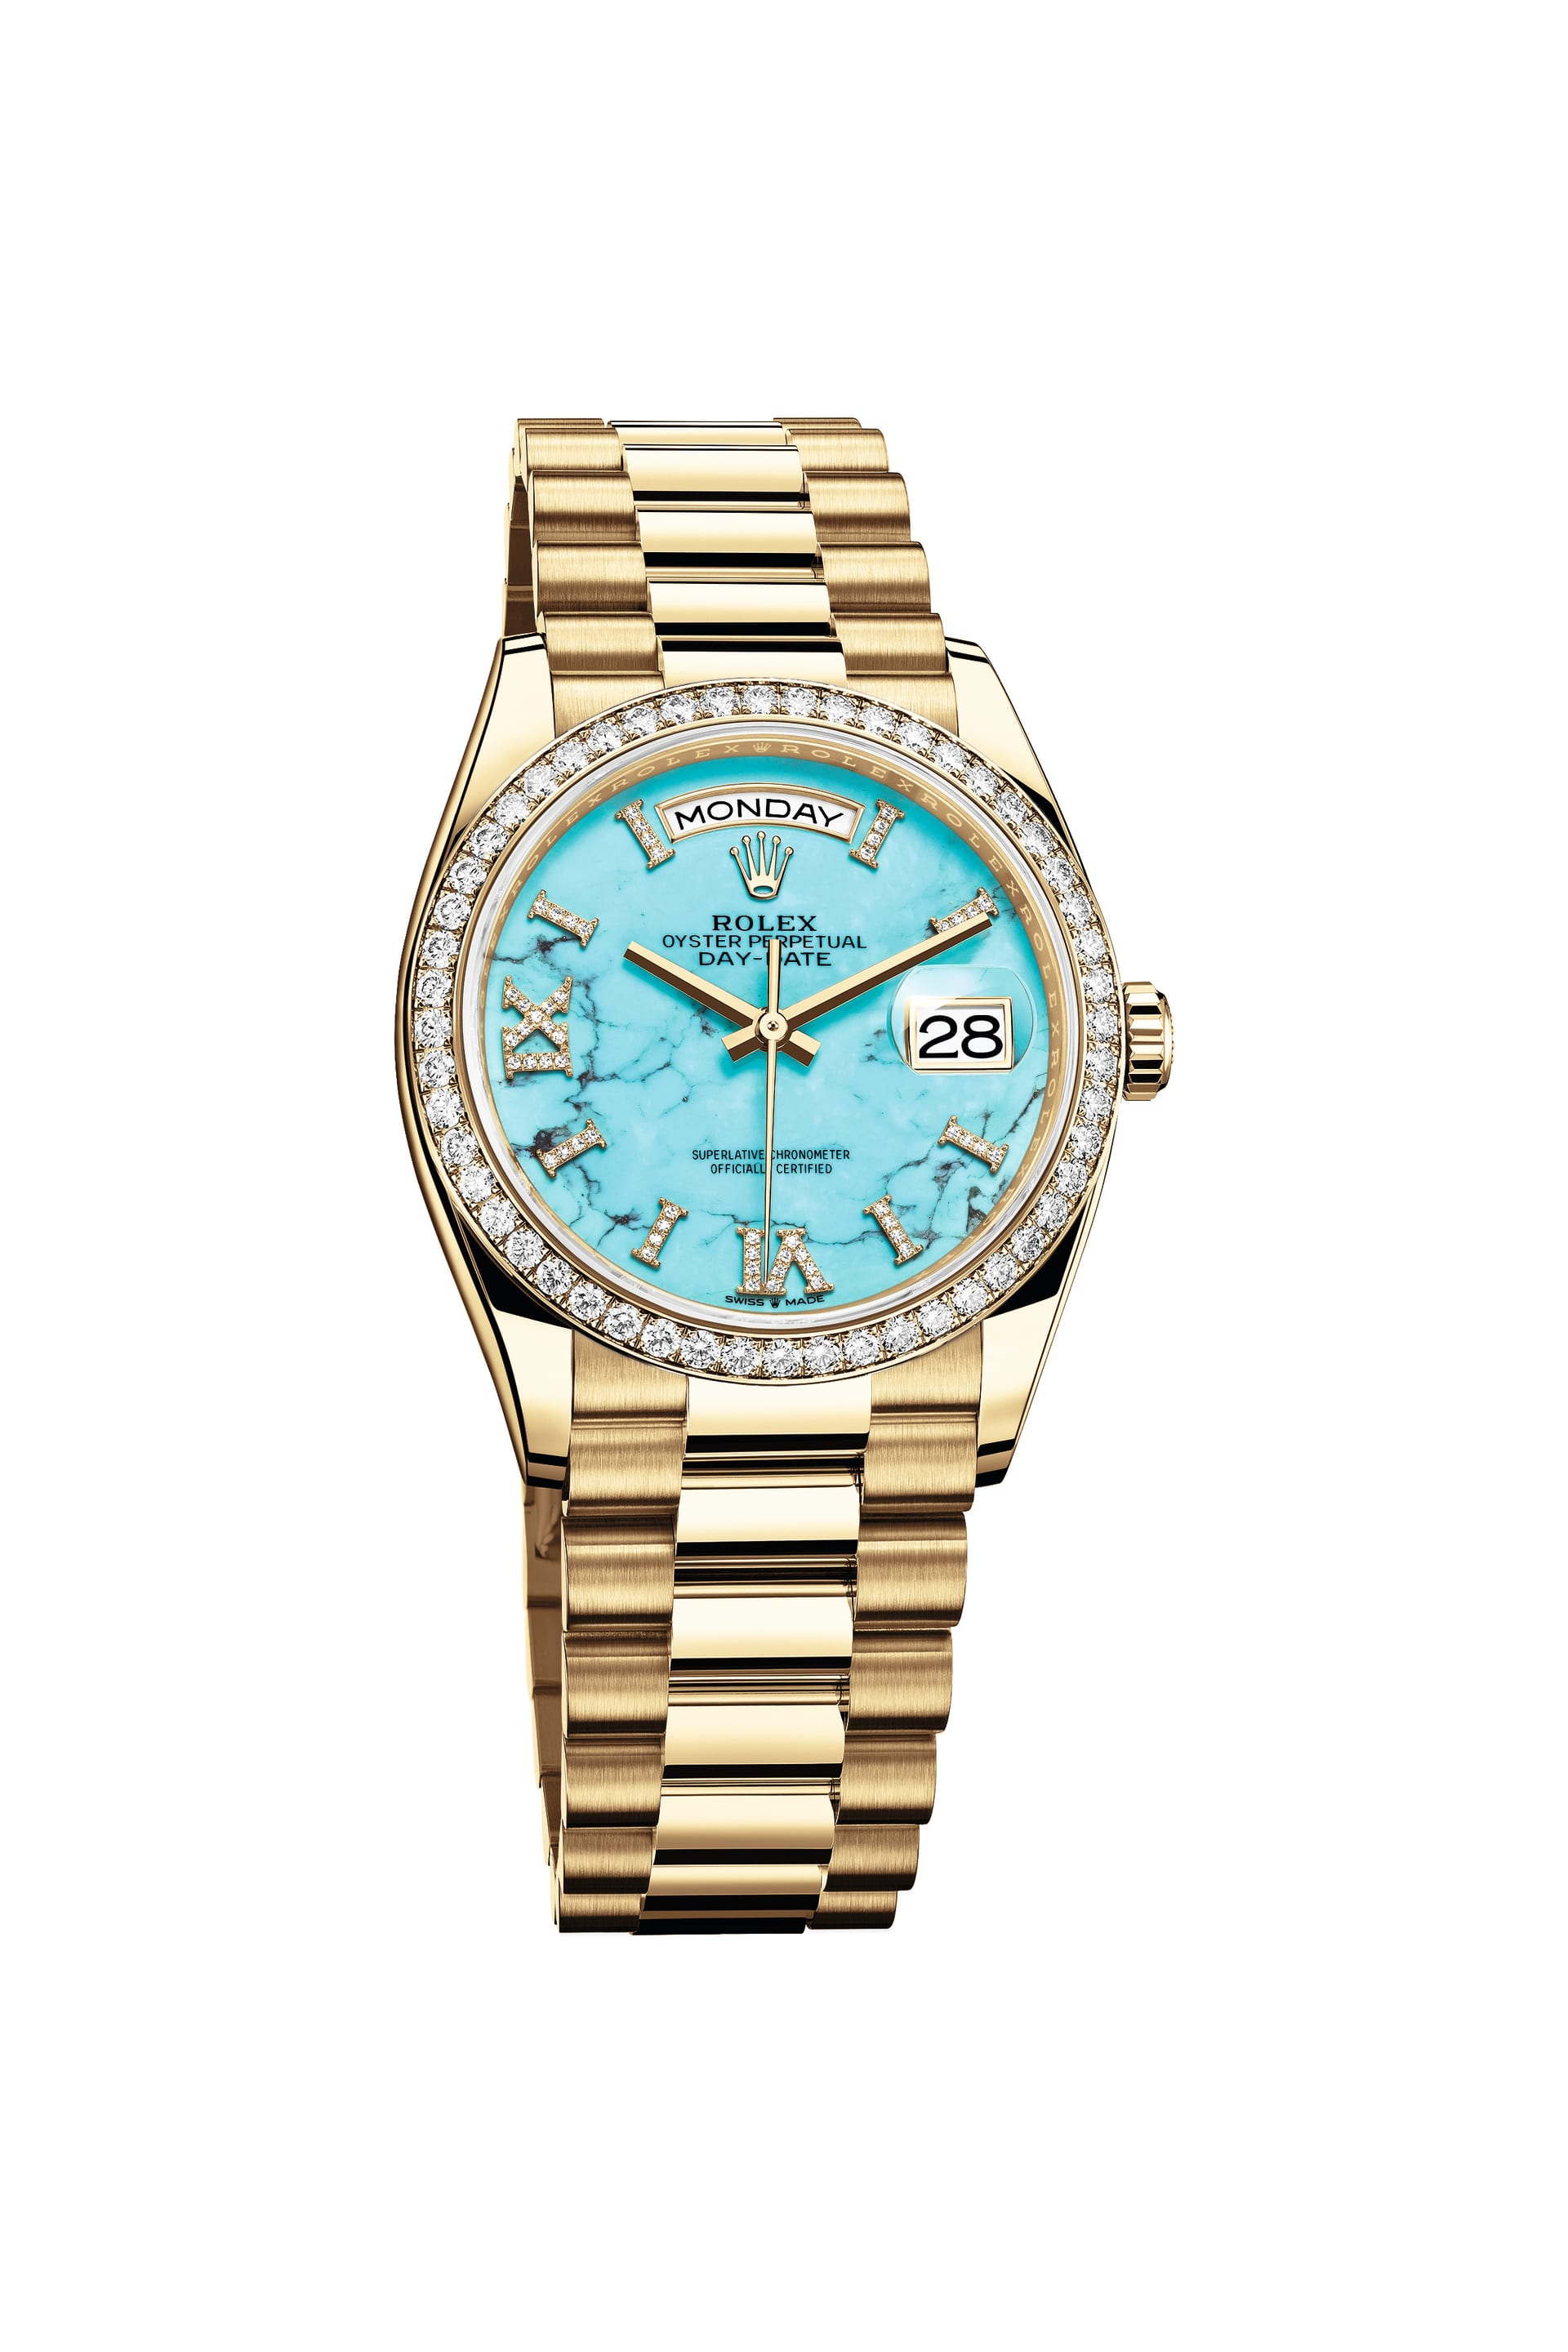 Rolex Oyster Perpetual Day-Date 36 with a turquoise dial.